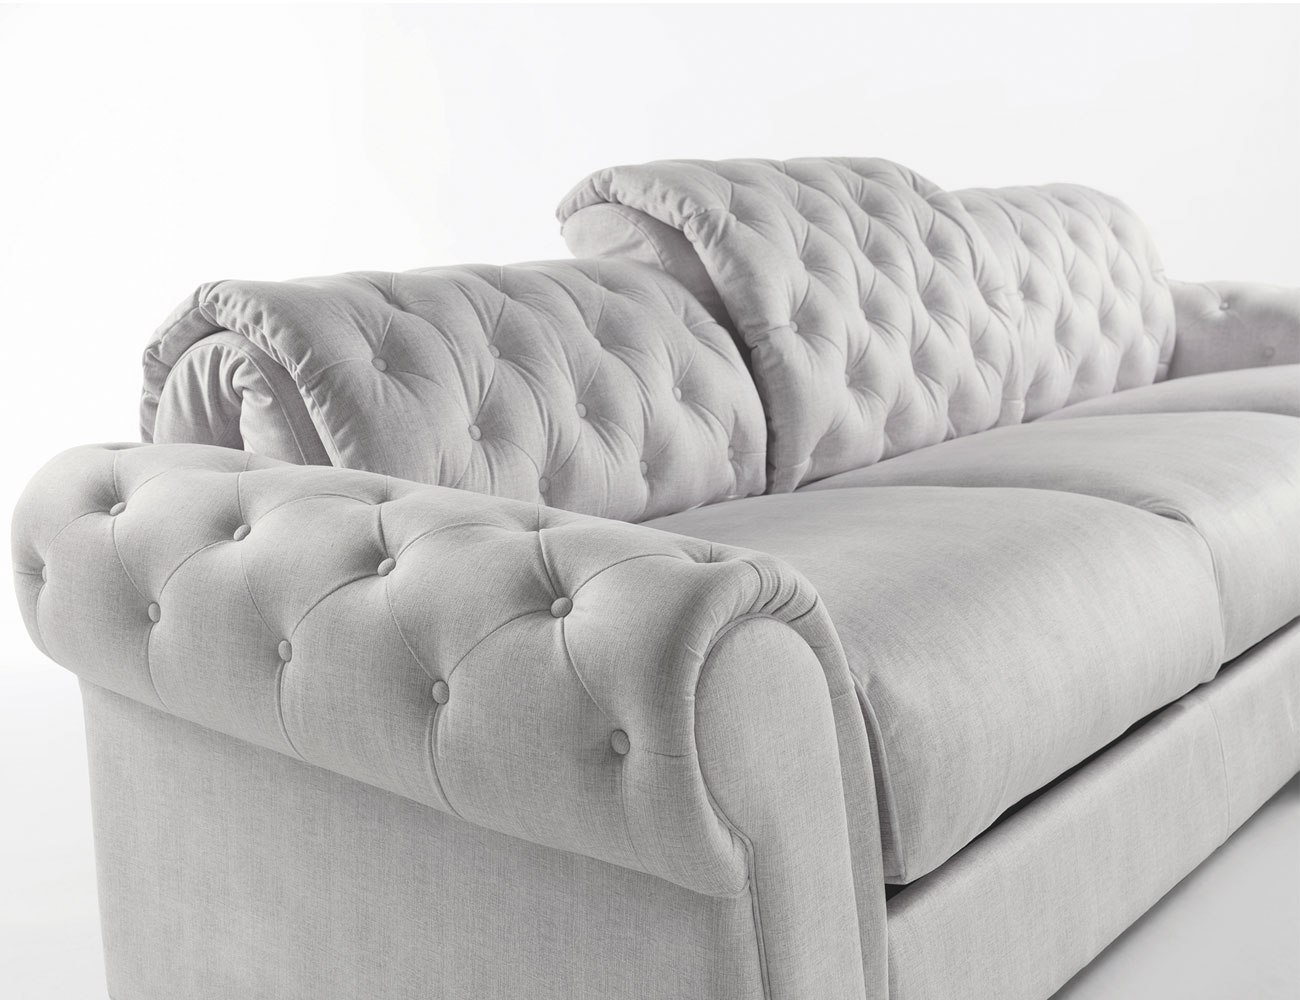 Sofa chaiselongue gran lujo decorativo capitone blanco tela 148